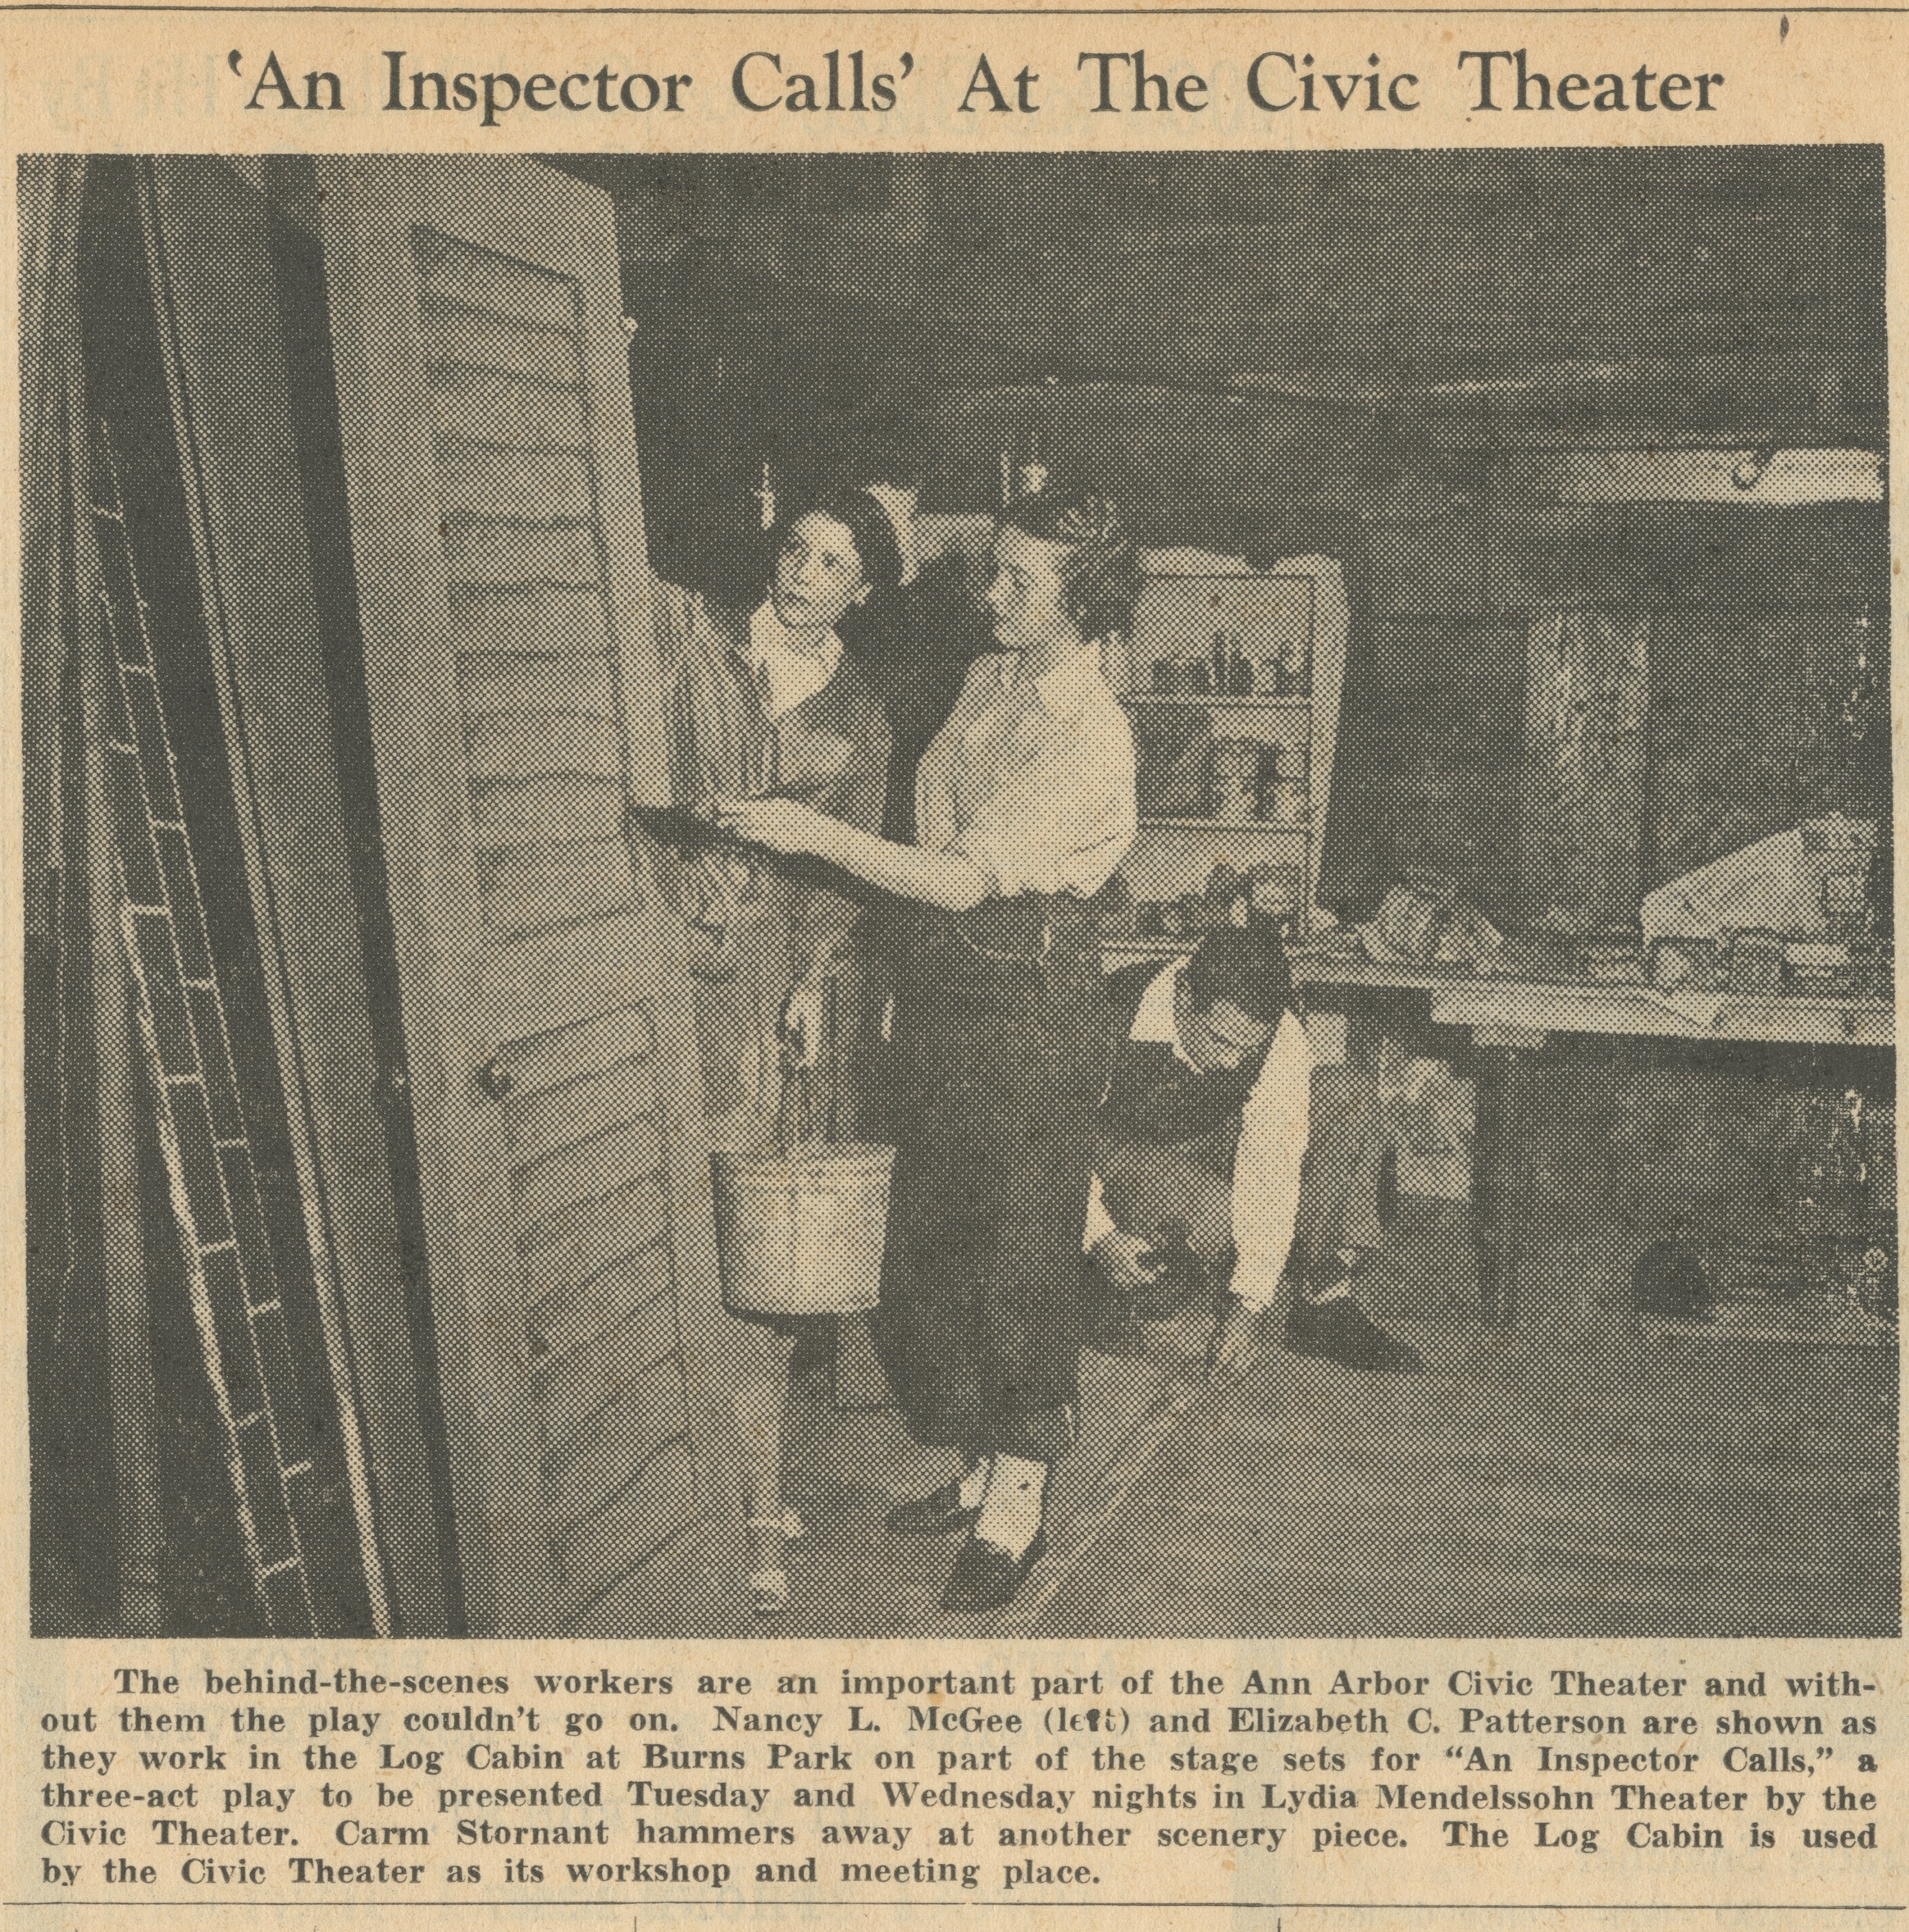 'An Inspector Calls' At The Civic Theater image